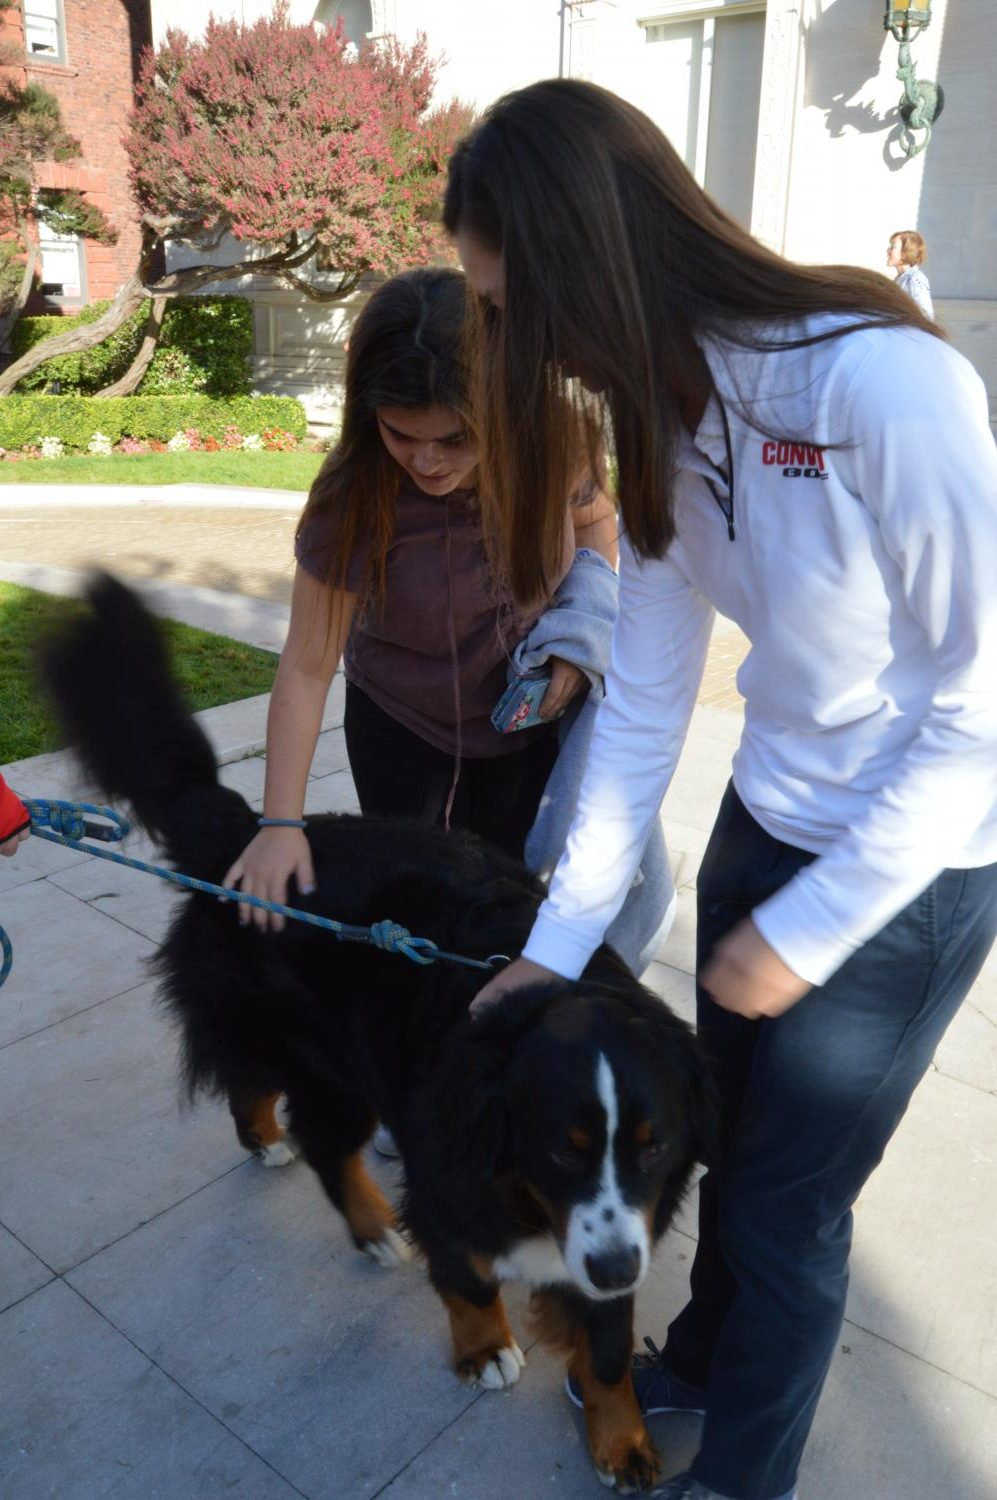 Freshmen Audrey Pinard and Sofia Jorgenson pet a dog at the Blessing of the Animals. The ceremony ended at 9 a.m. and classes resumed normally afterward.